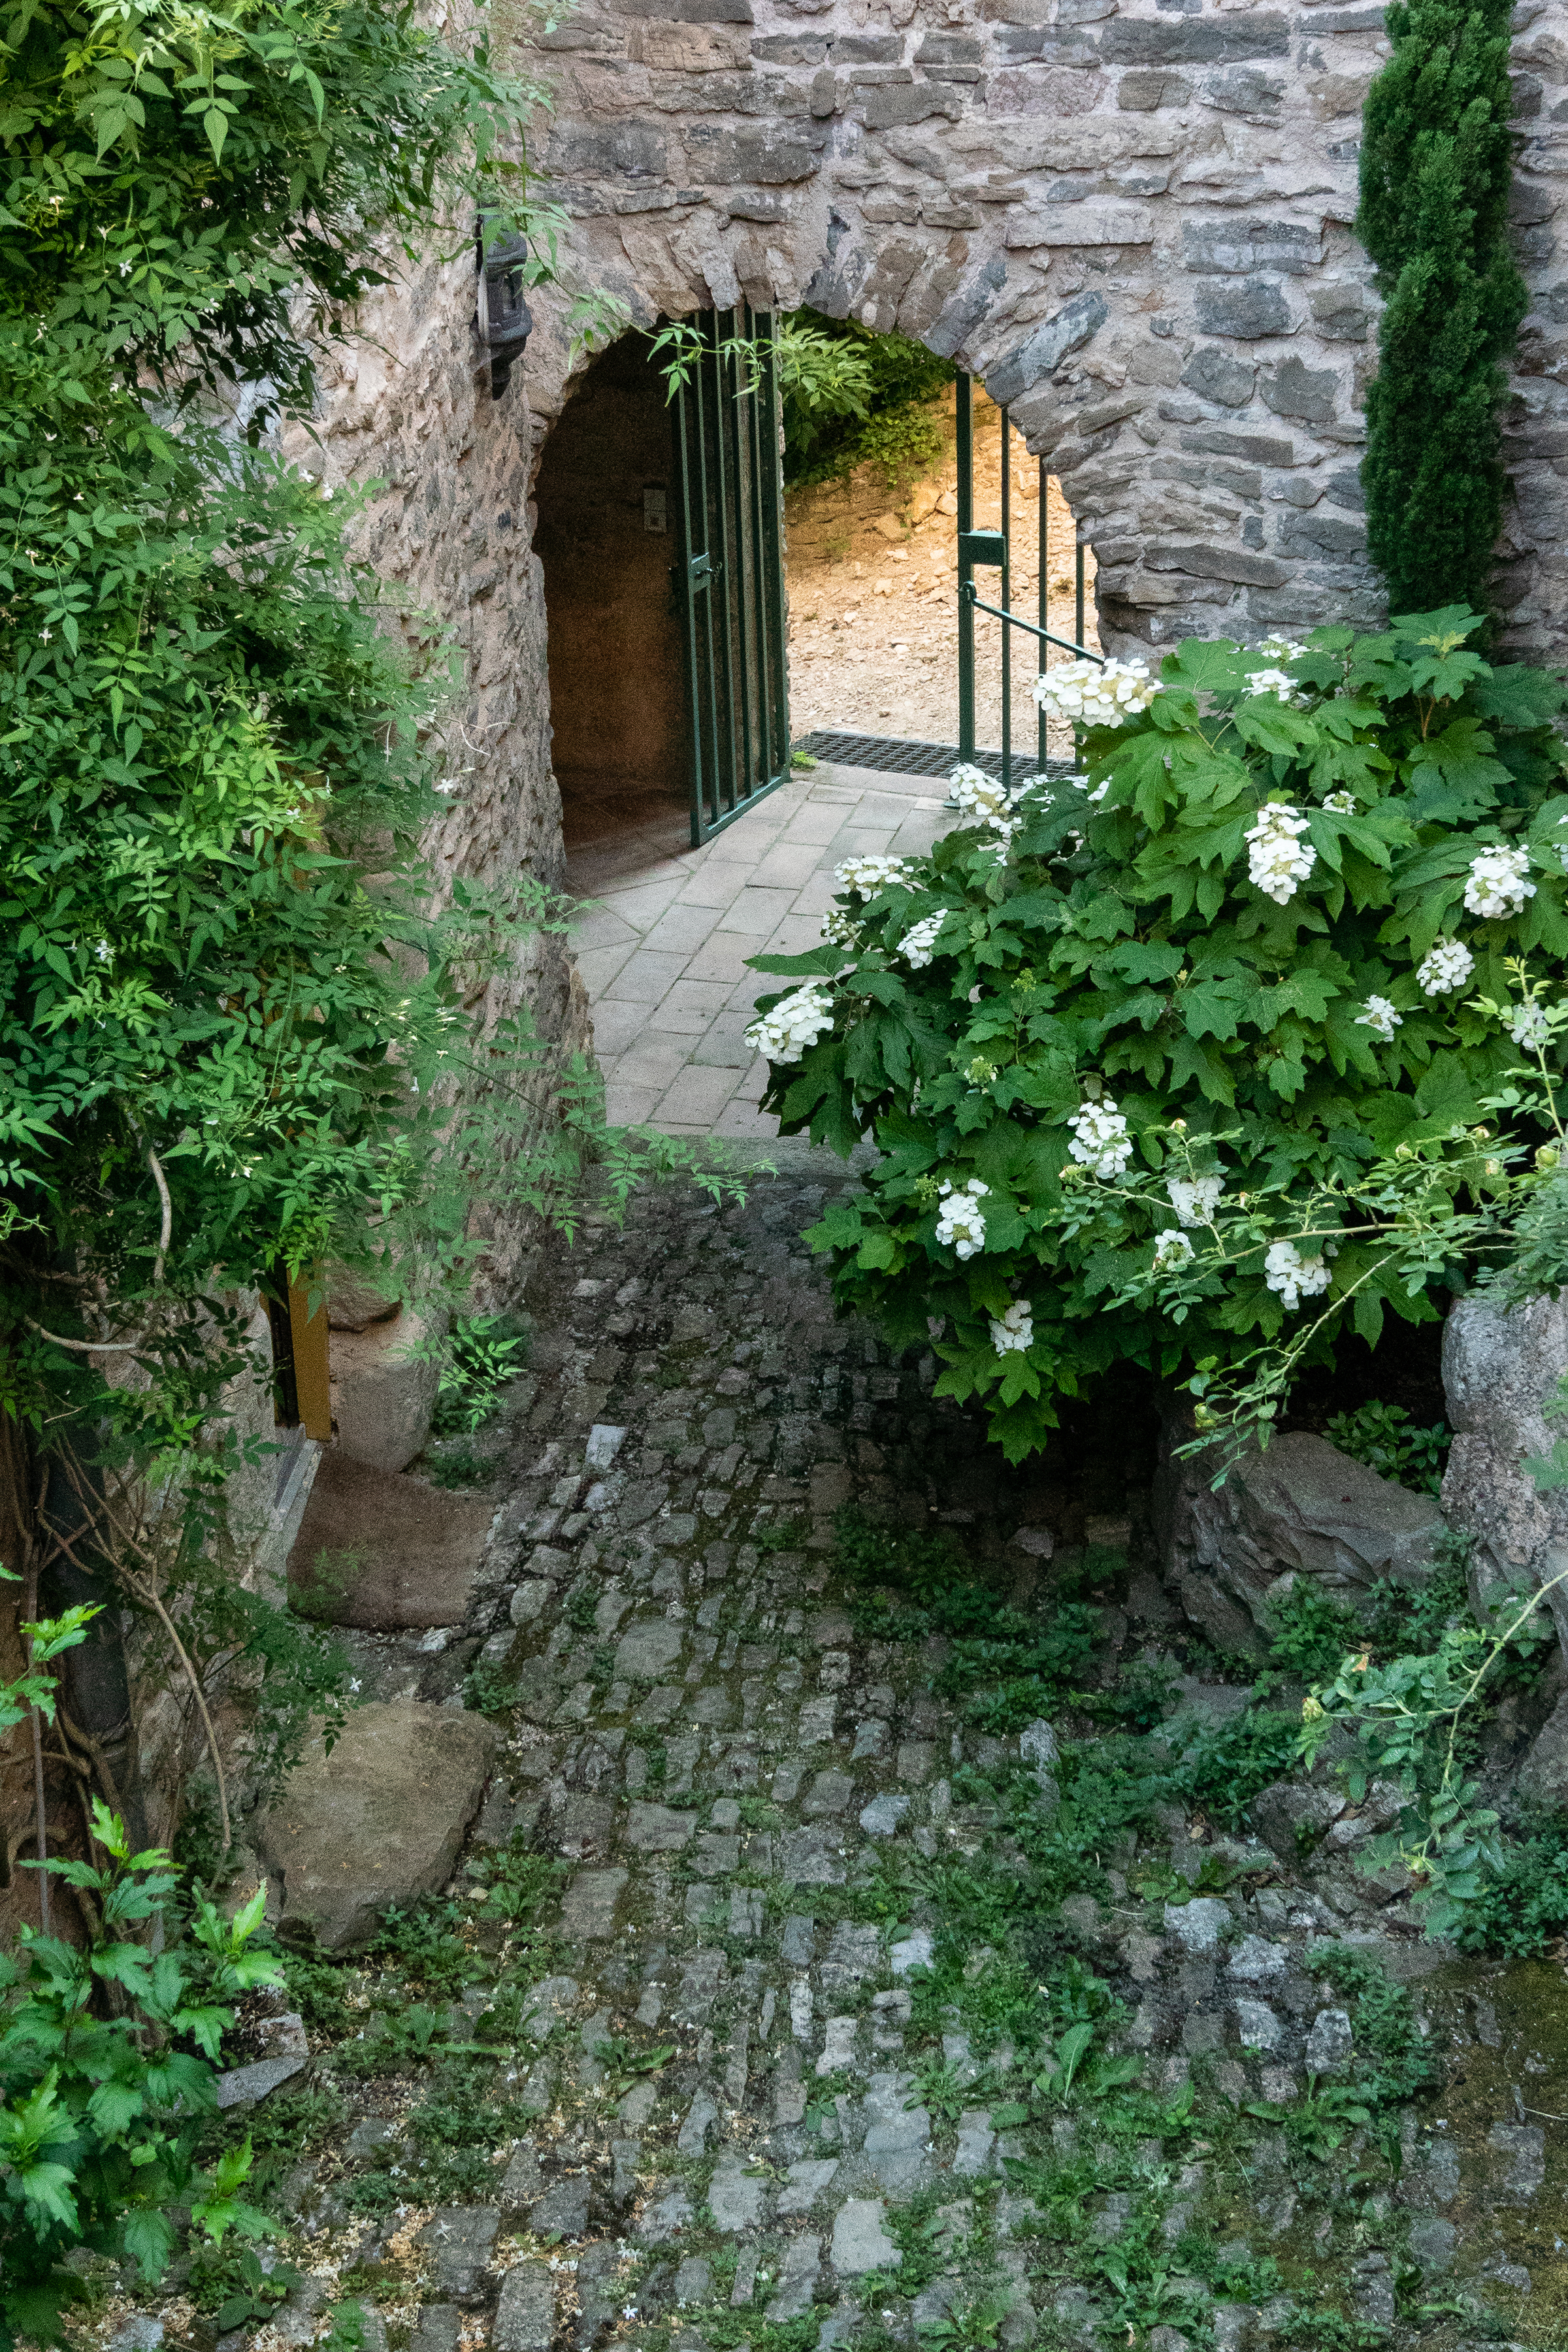 The medieval interior courtyard of the retreat's house is magical